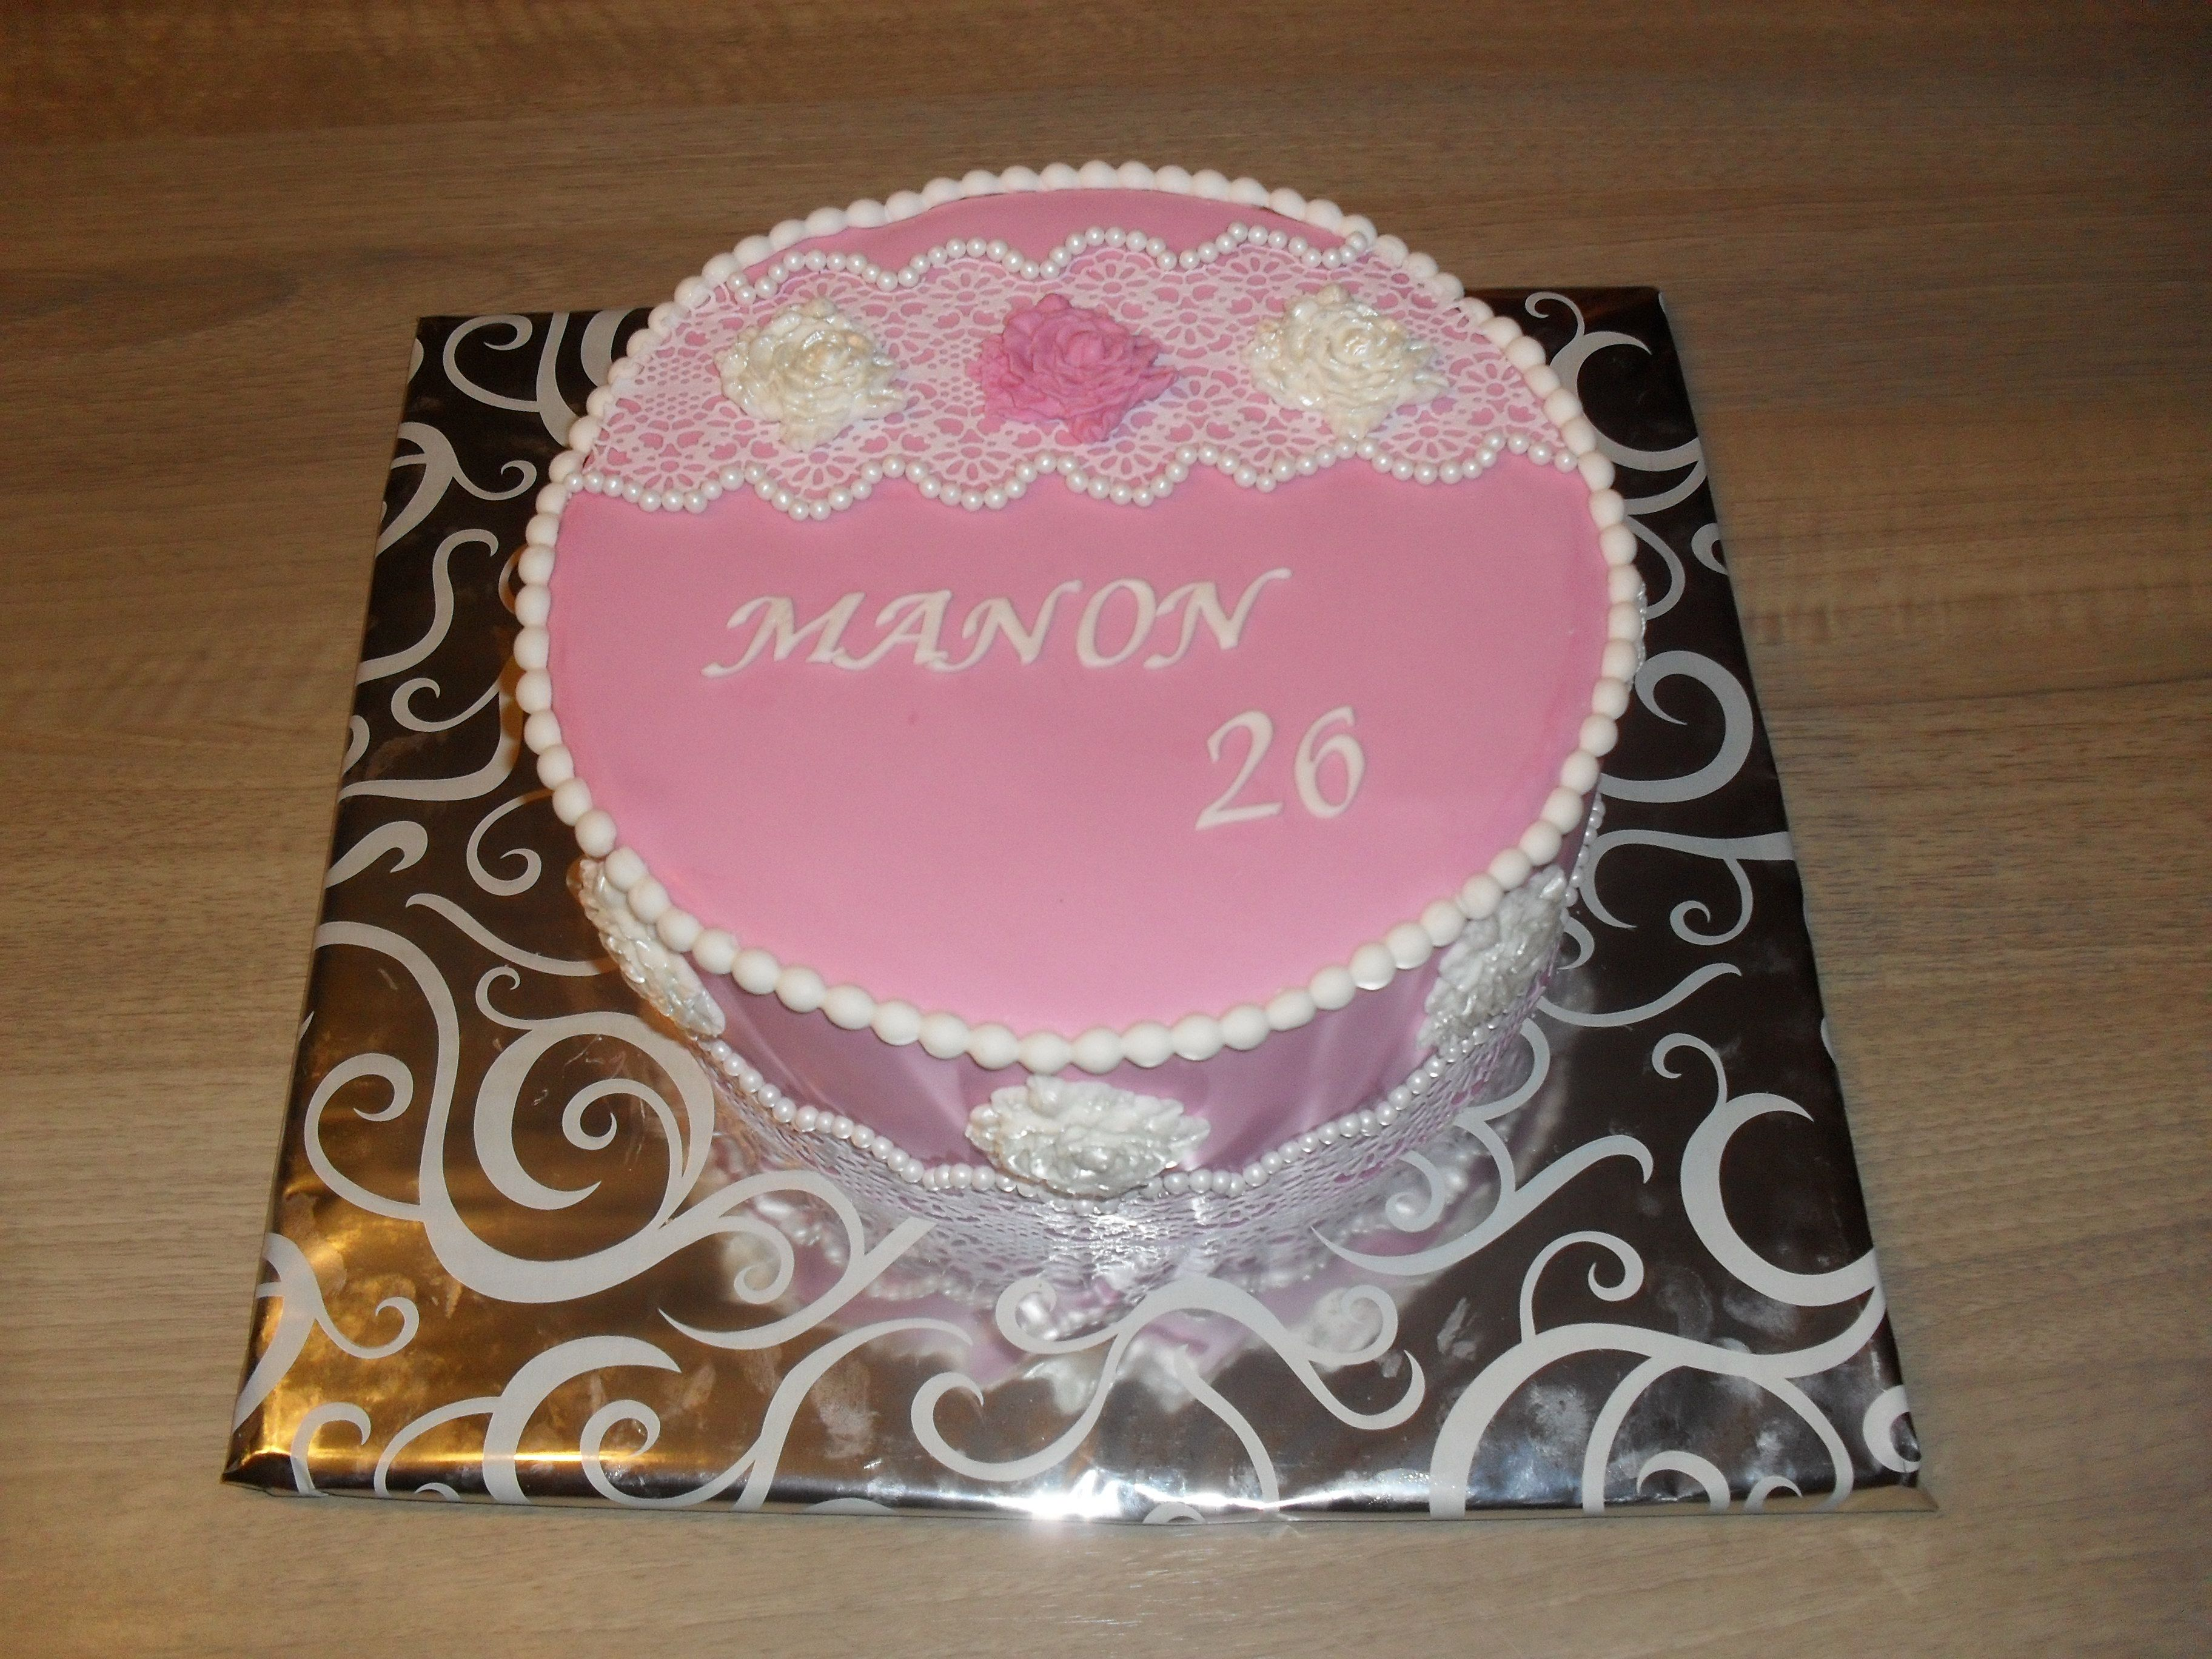 Barok taart roze en wit, met kant en rozen/ Baroque cake pink and white. With lace and roses